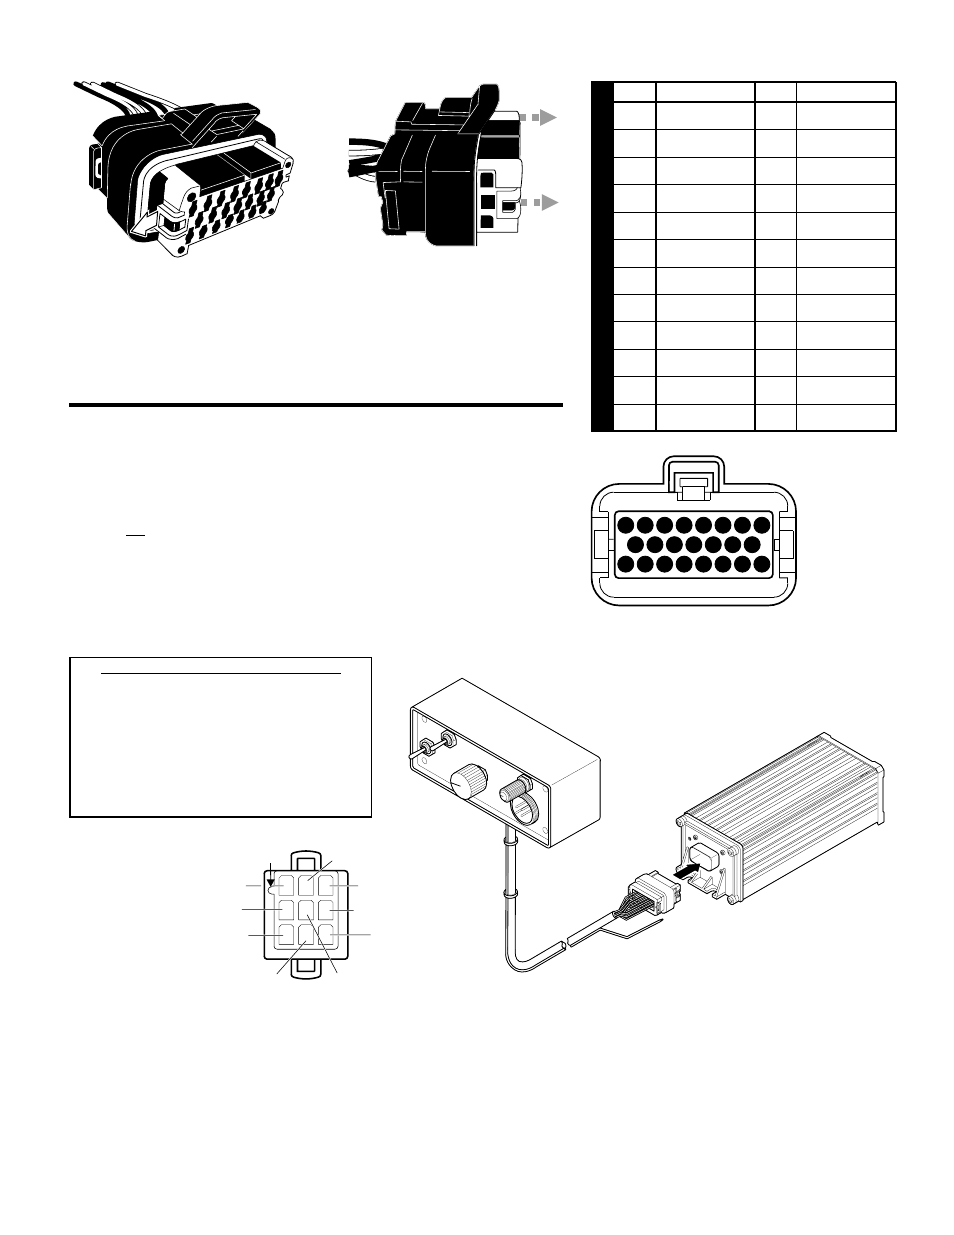 Fig. 7, Fig. 8, Lighting control | Whelen WPA1 User Manual | Page 5 / 6Manuals Directory